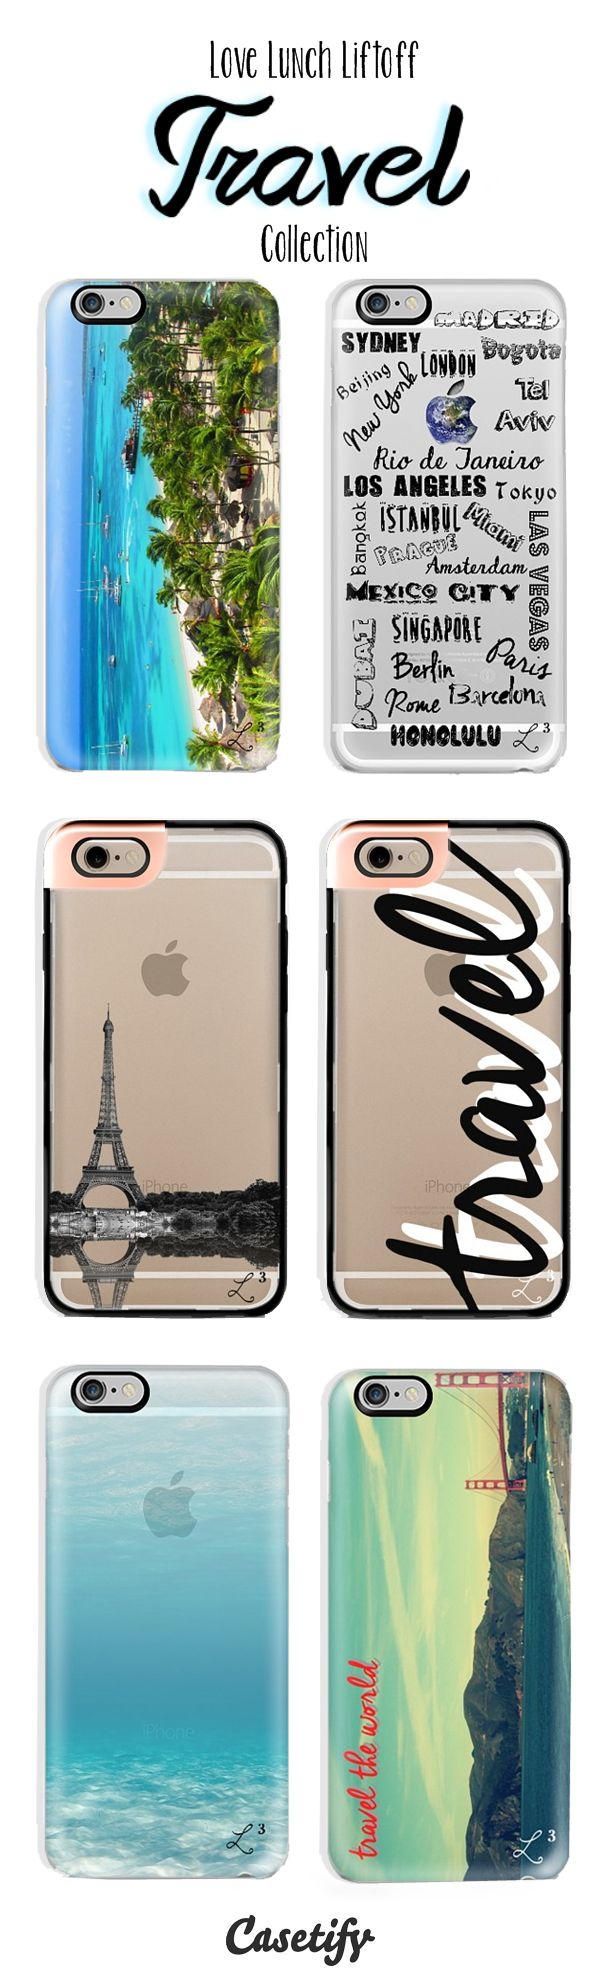 L3 Travel Collection available from @casetify - use promo code QJ3PX9 to get $10 off and FREE Shipping Worldwide. #travel #casetify #traveltheworld